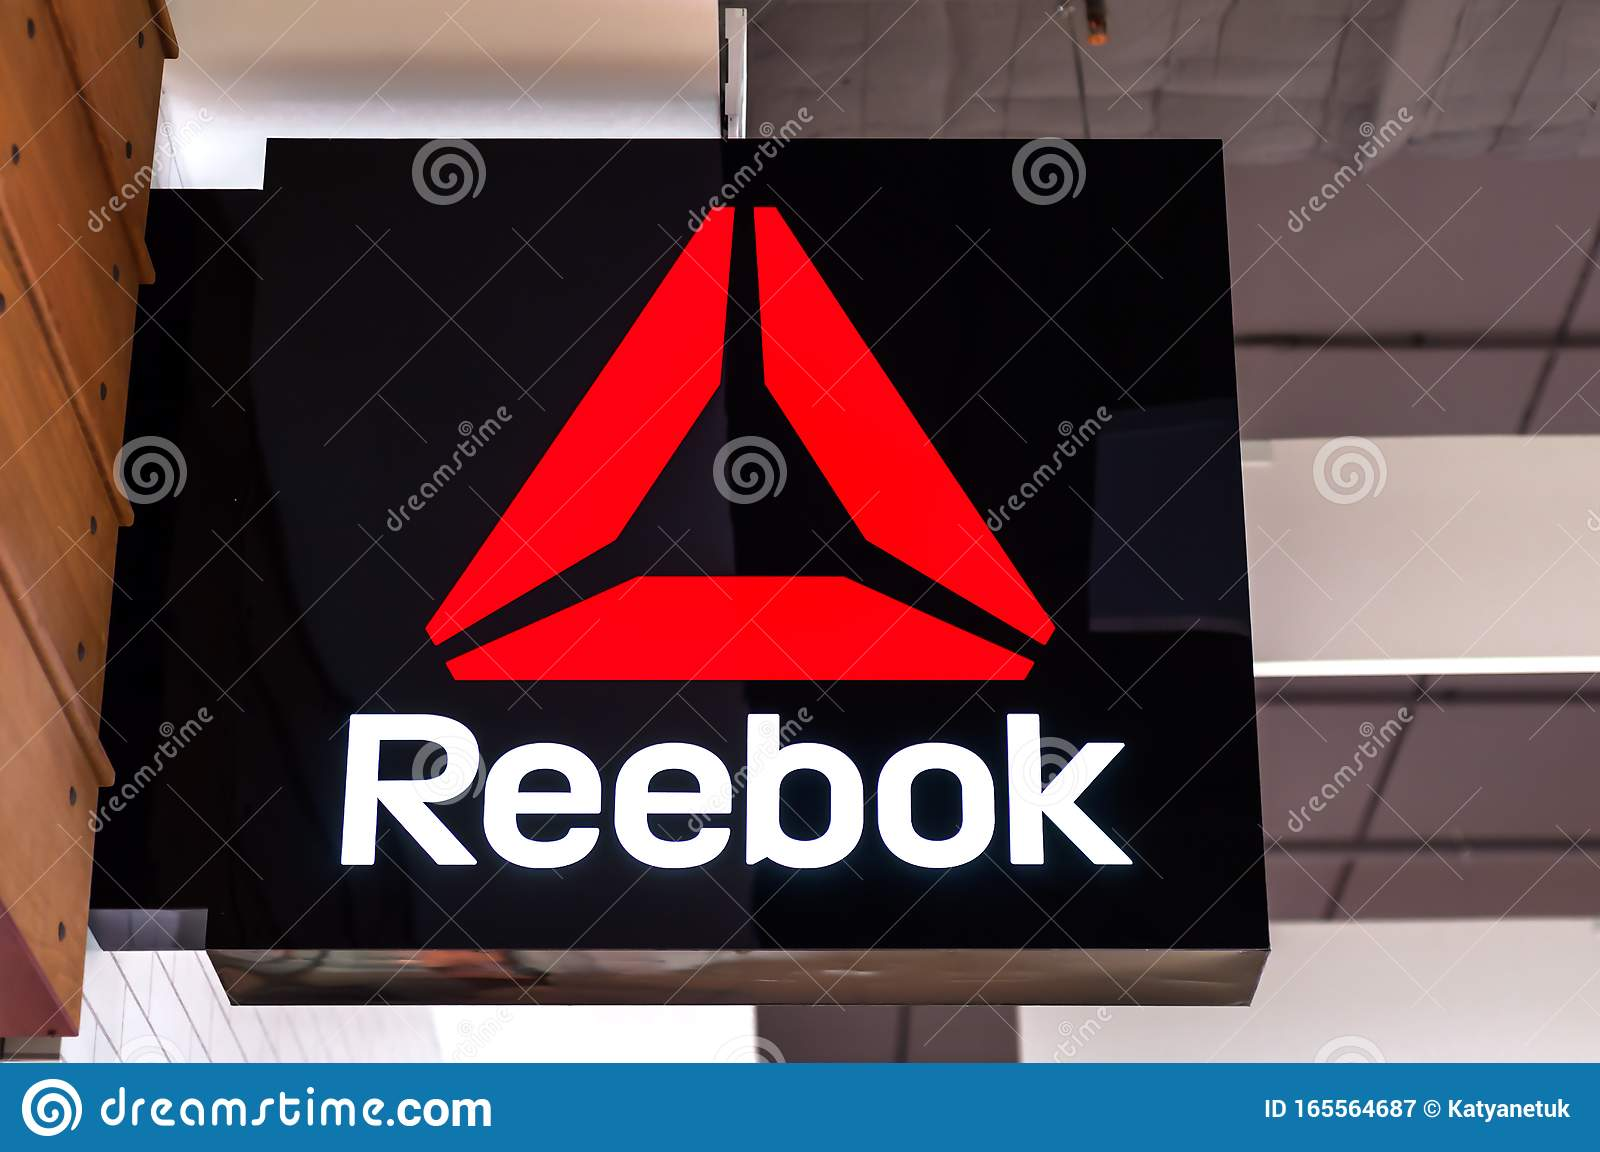 reebok shoes sign